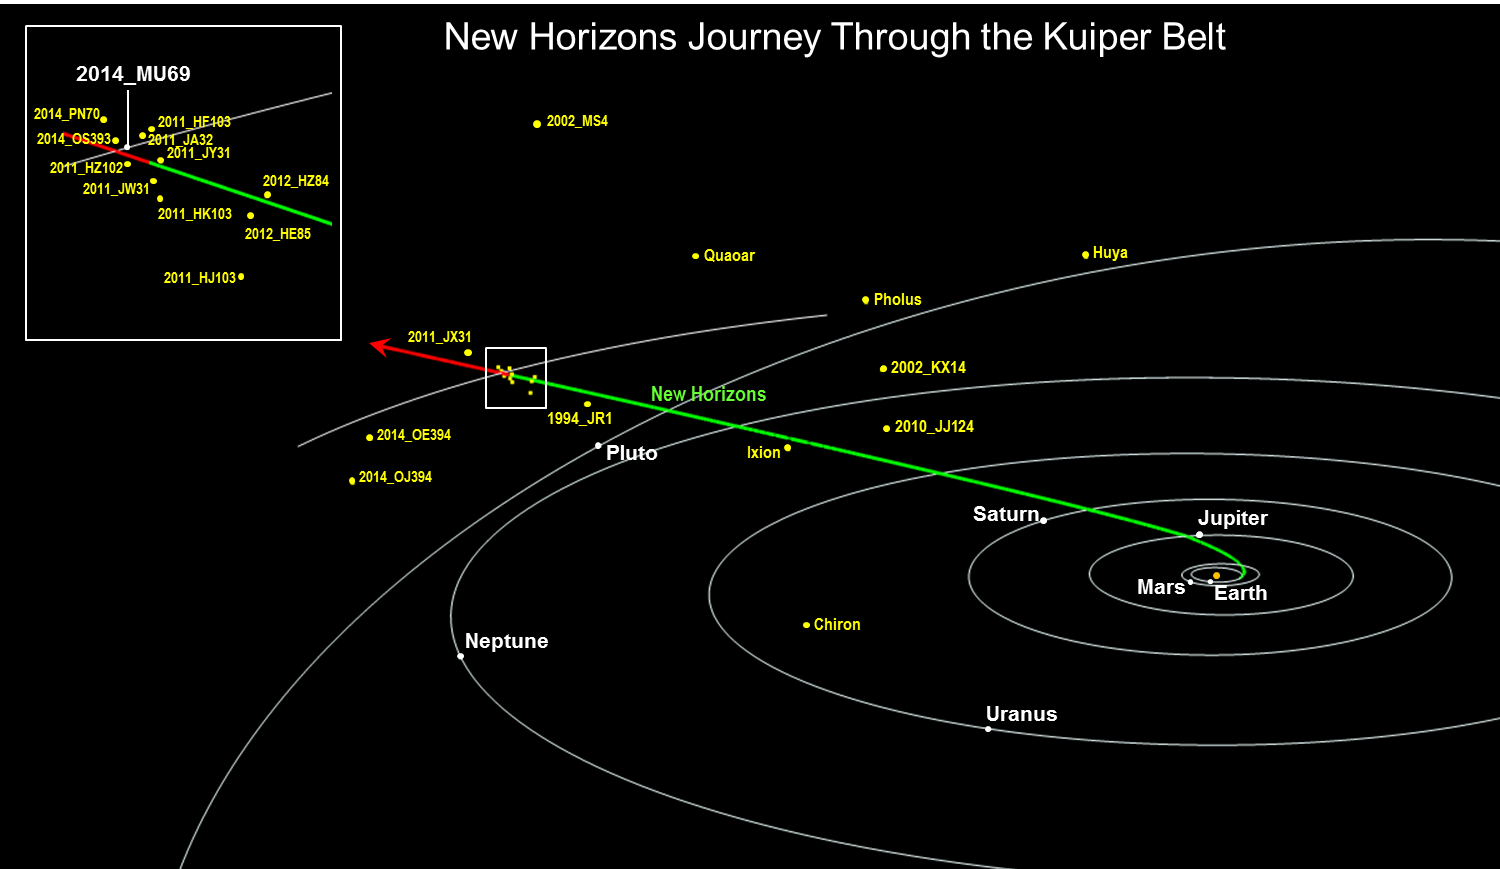 http://pluto.jhuapl.edu/Mission/Where-is-New-Horizons/NH_KEM_JourneyThroughKB_Trajectory_Guo20181031_v2.png